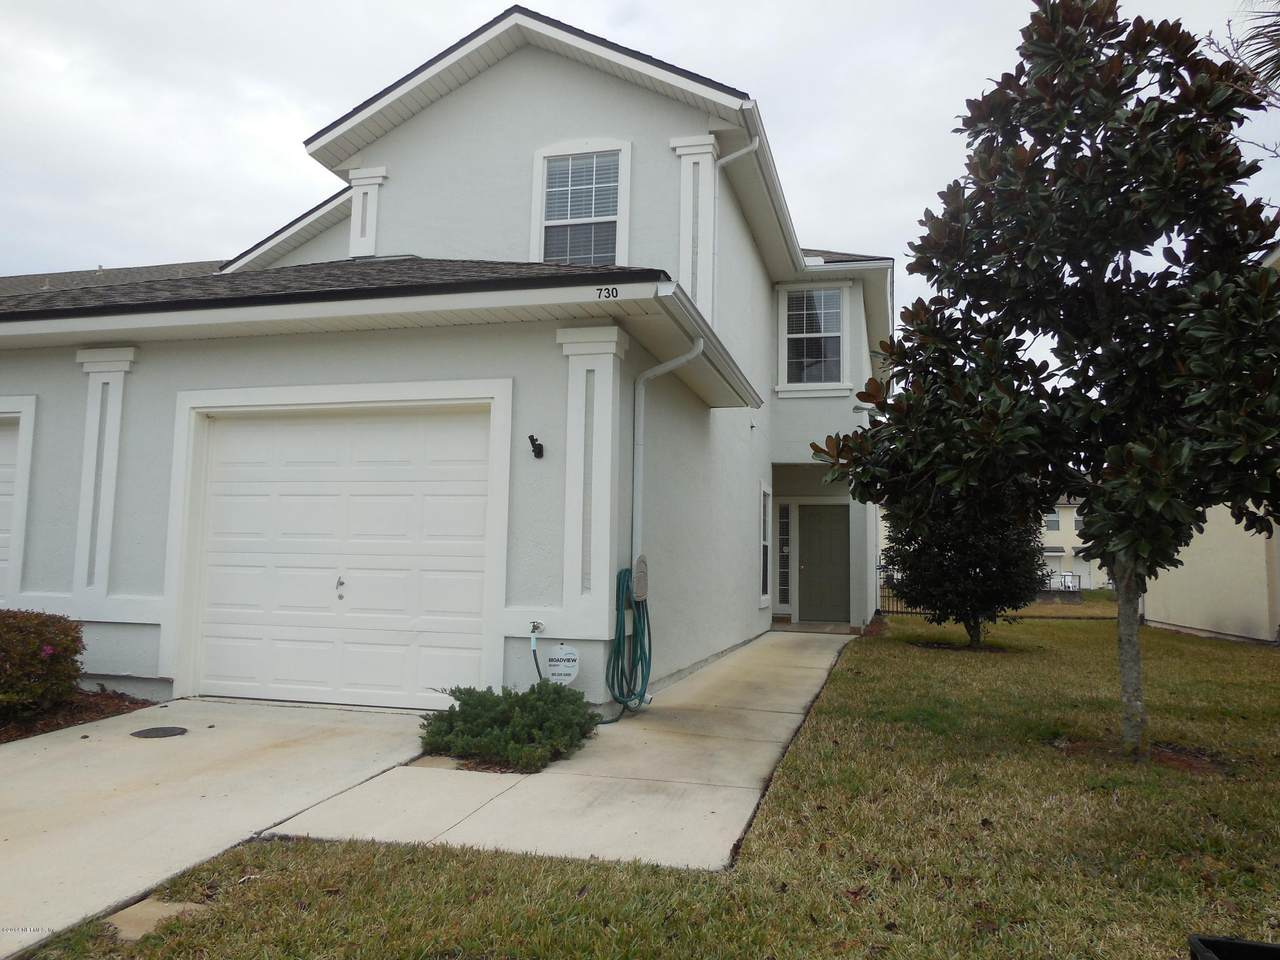 730 Middle Branch Way - Photo 1